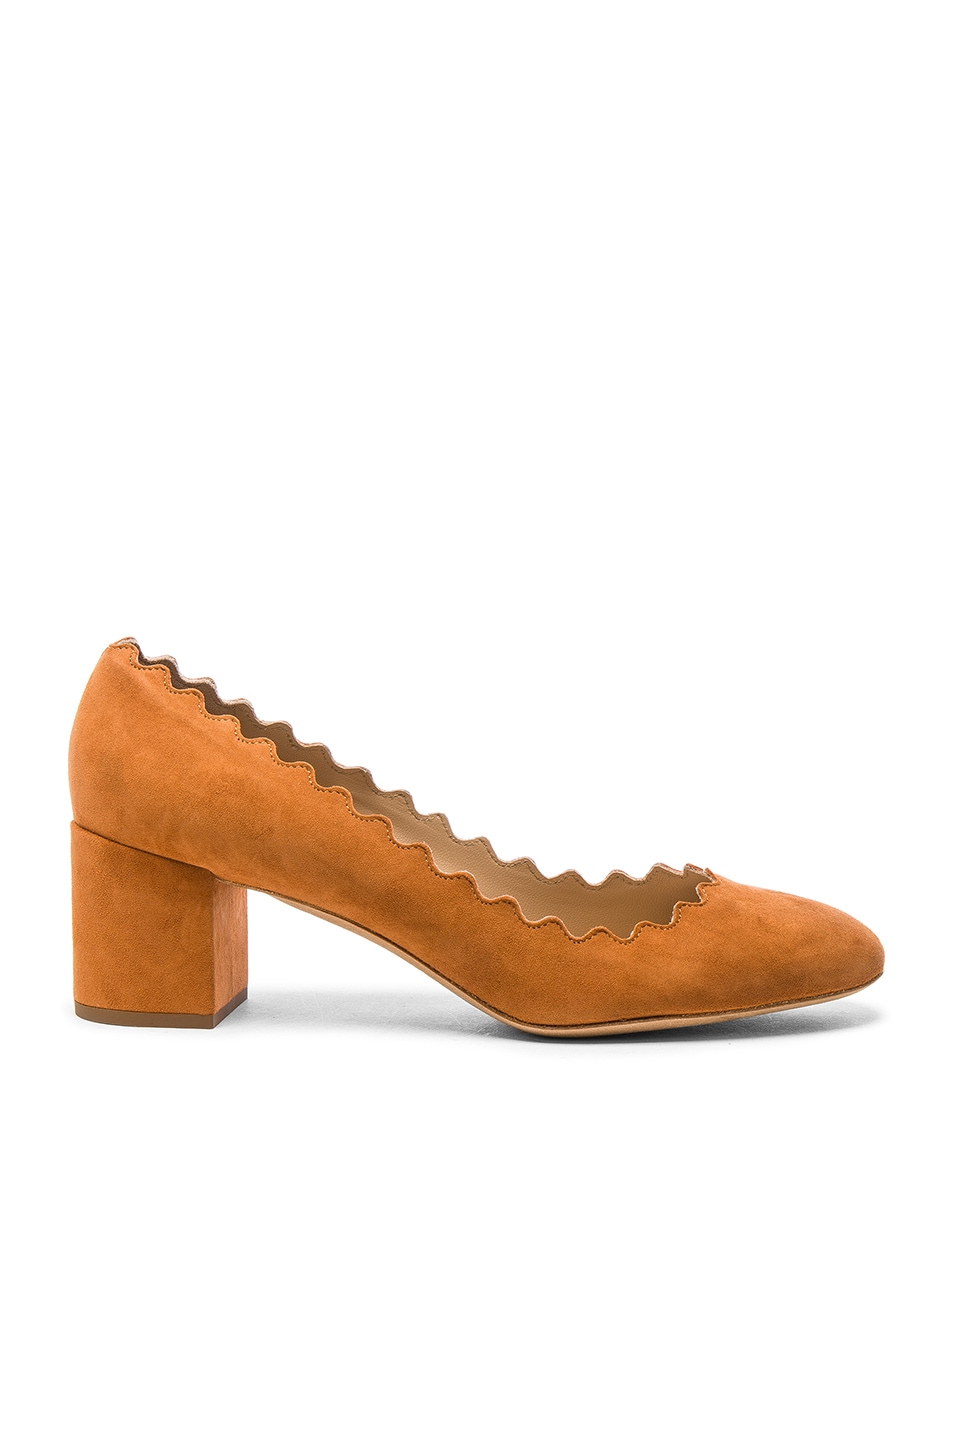 Image 1 of Chloe Suede Lauren Heels in Ochre